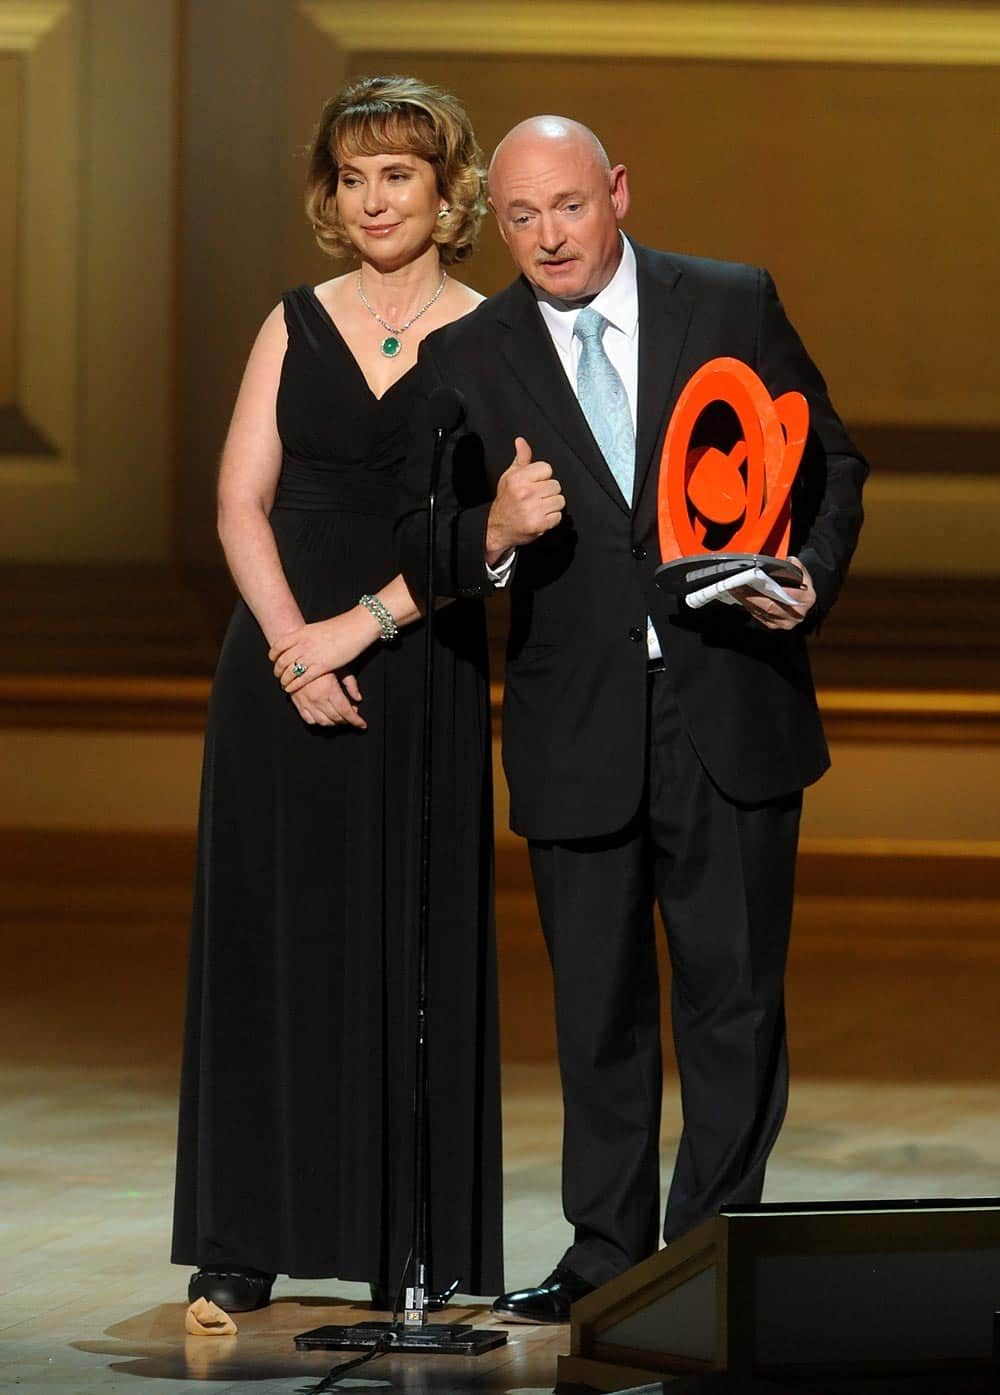 US Representative Garbrielle Giffords and husband Retired US Navy Captain and NASA Astronaut Mark Kelly accept The Couple of the Year Award on stage at the 2013 Glamour Women of the Year Awards.